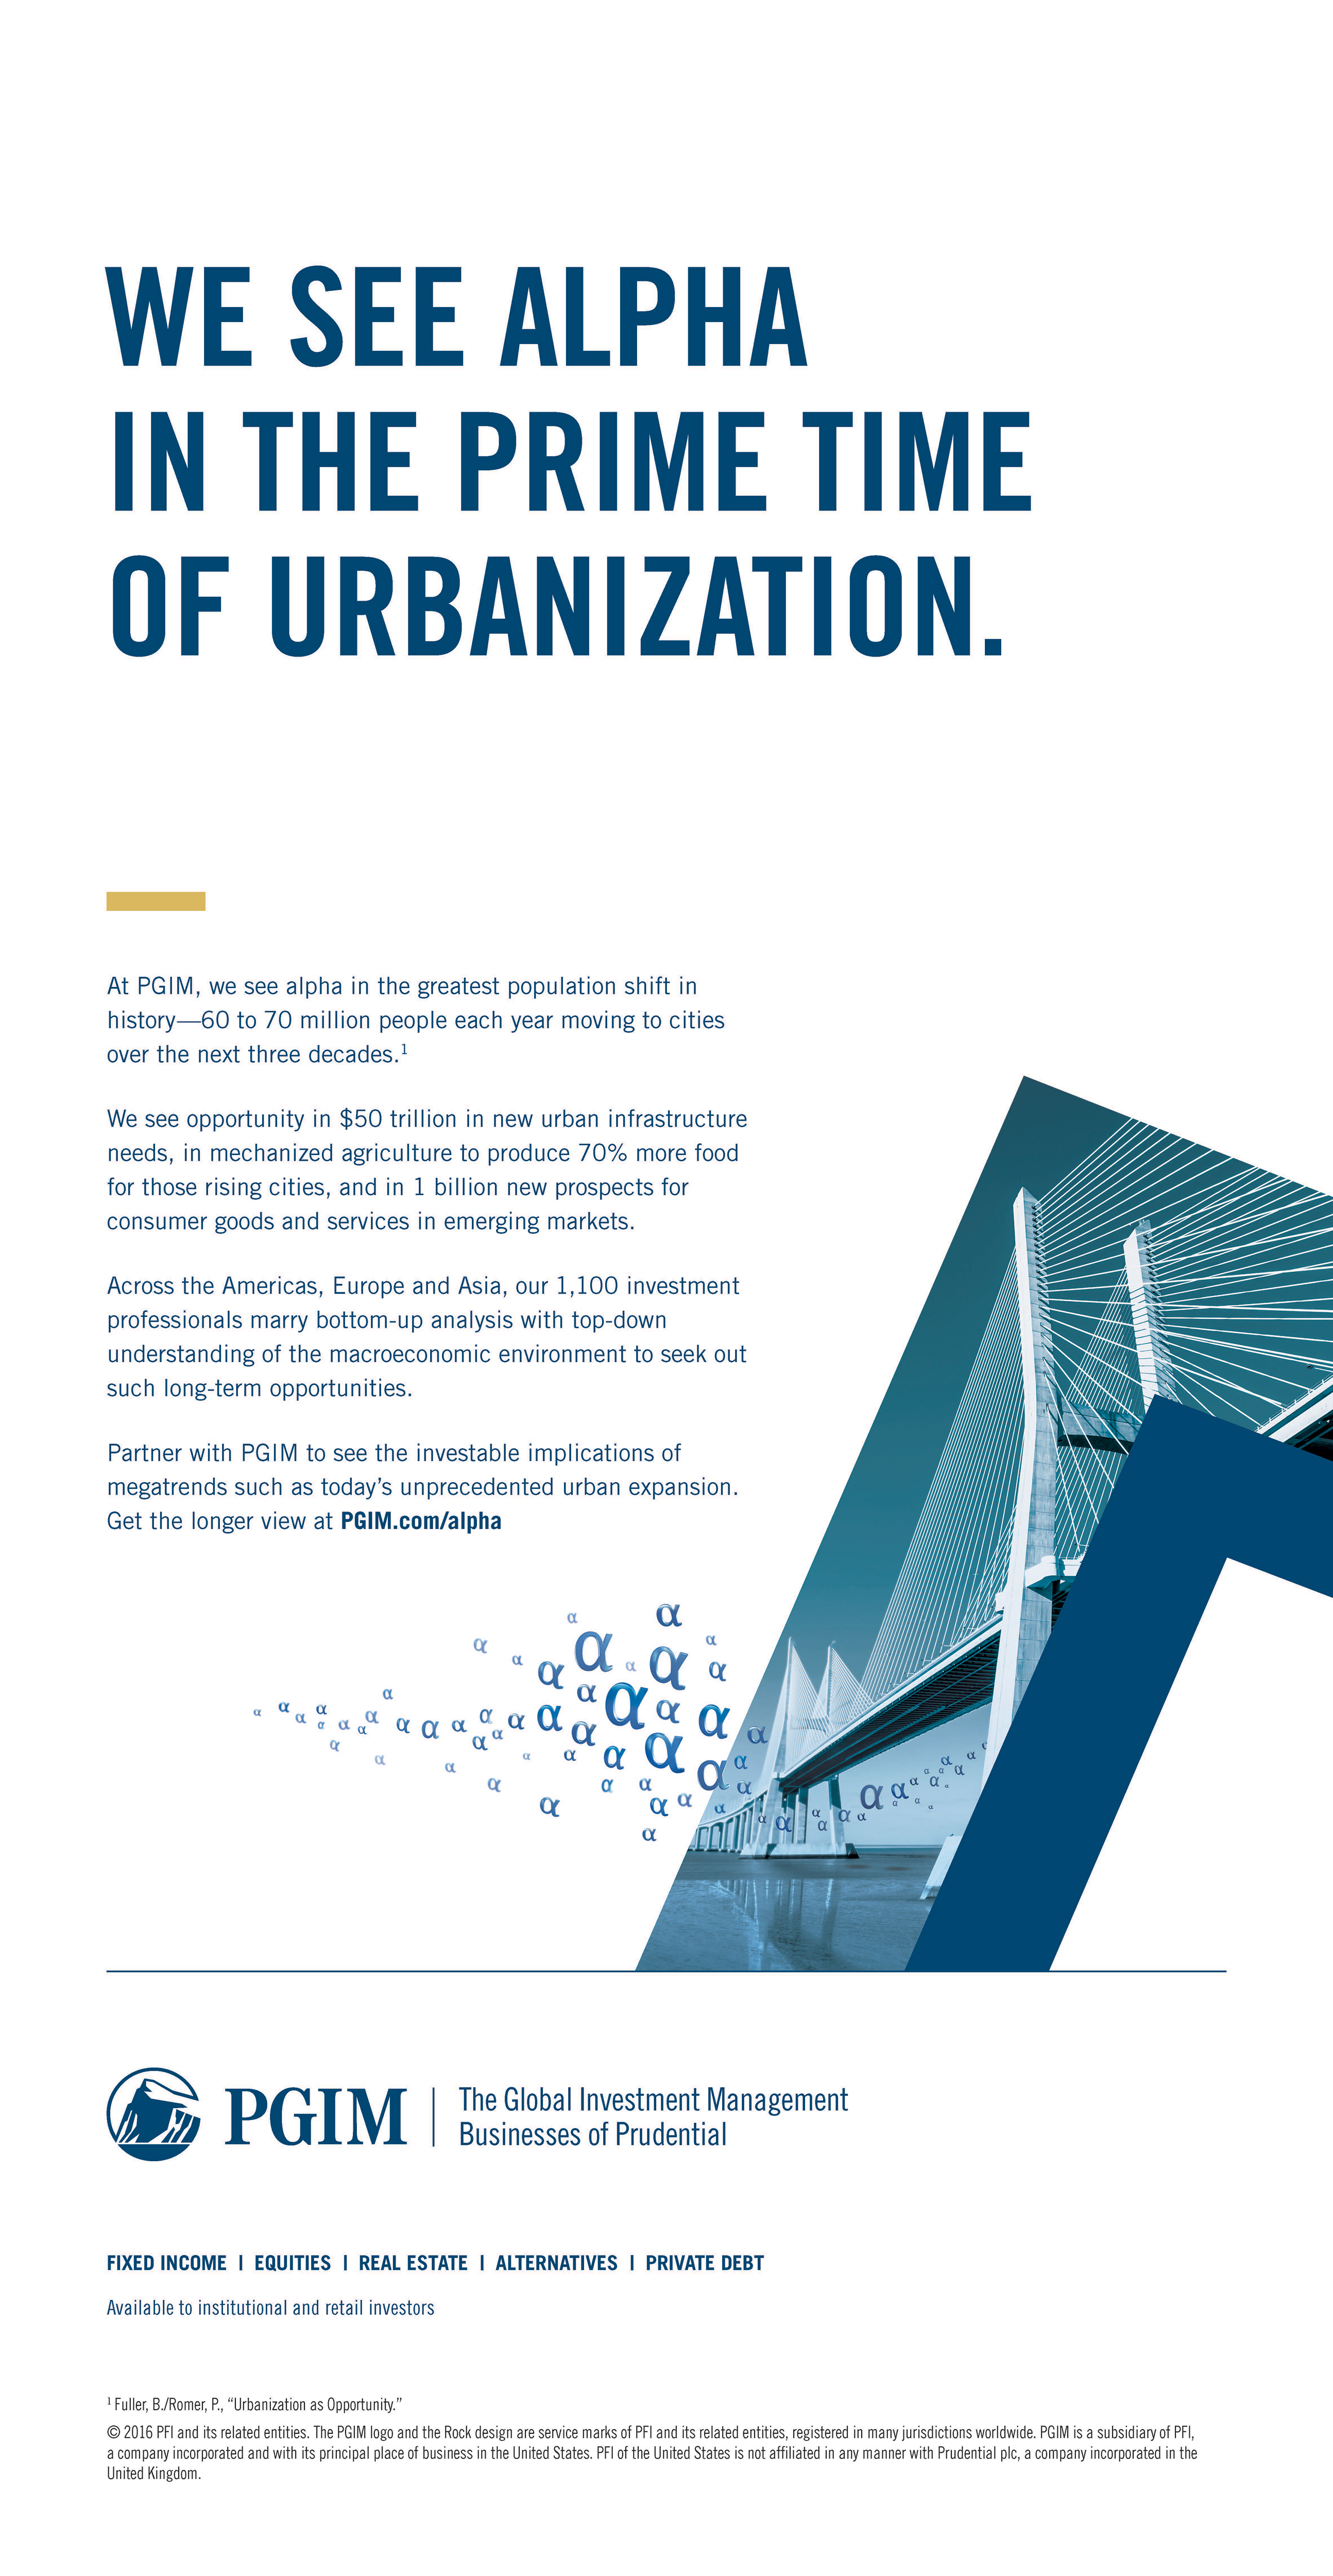 PGIM's full-page ad, running in the U.S., touts the company's perspective on opportunities borne of global urbanization. (Graphic: Business Wire)